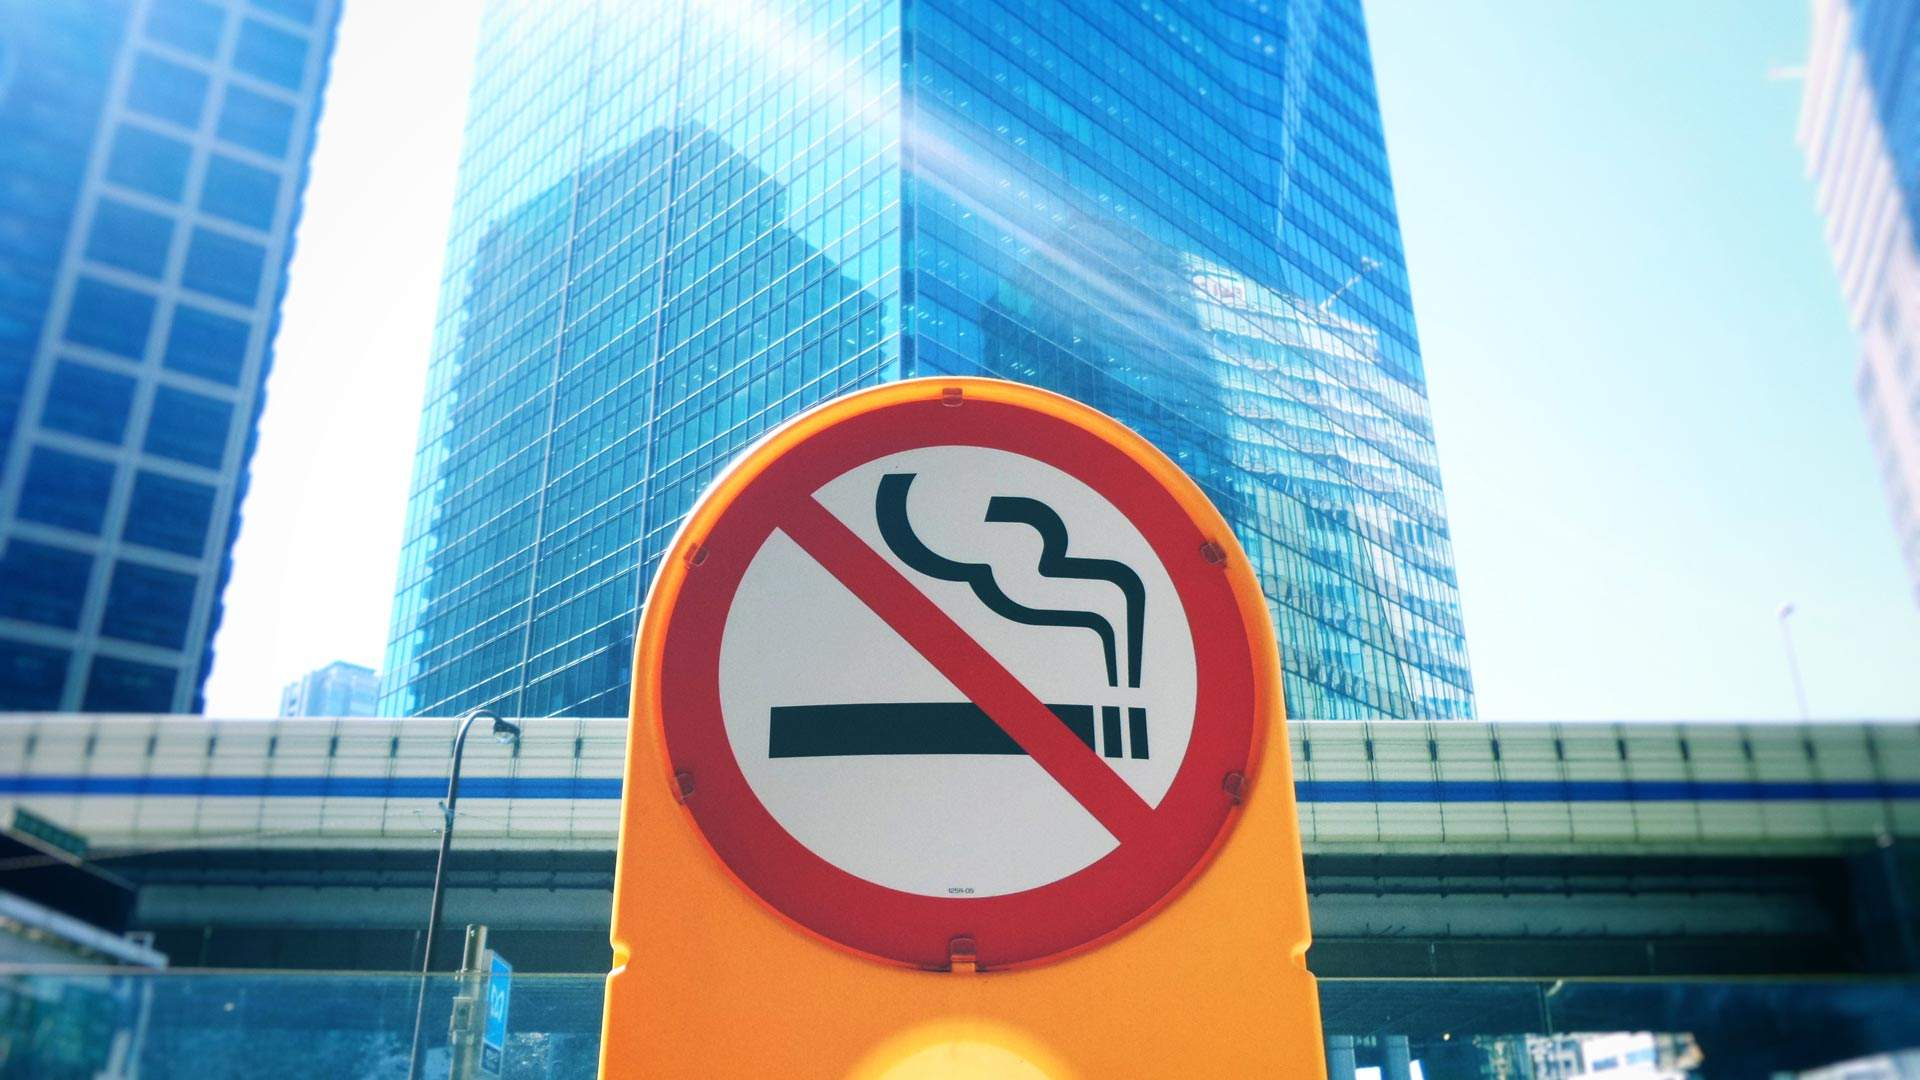 North Sydney's CBD Is Butting Out and Becoming Totally Smoke-Free